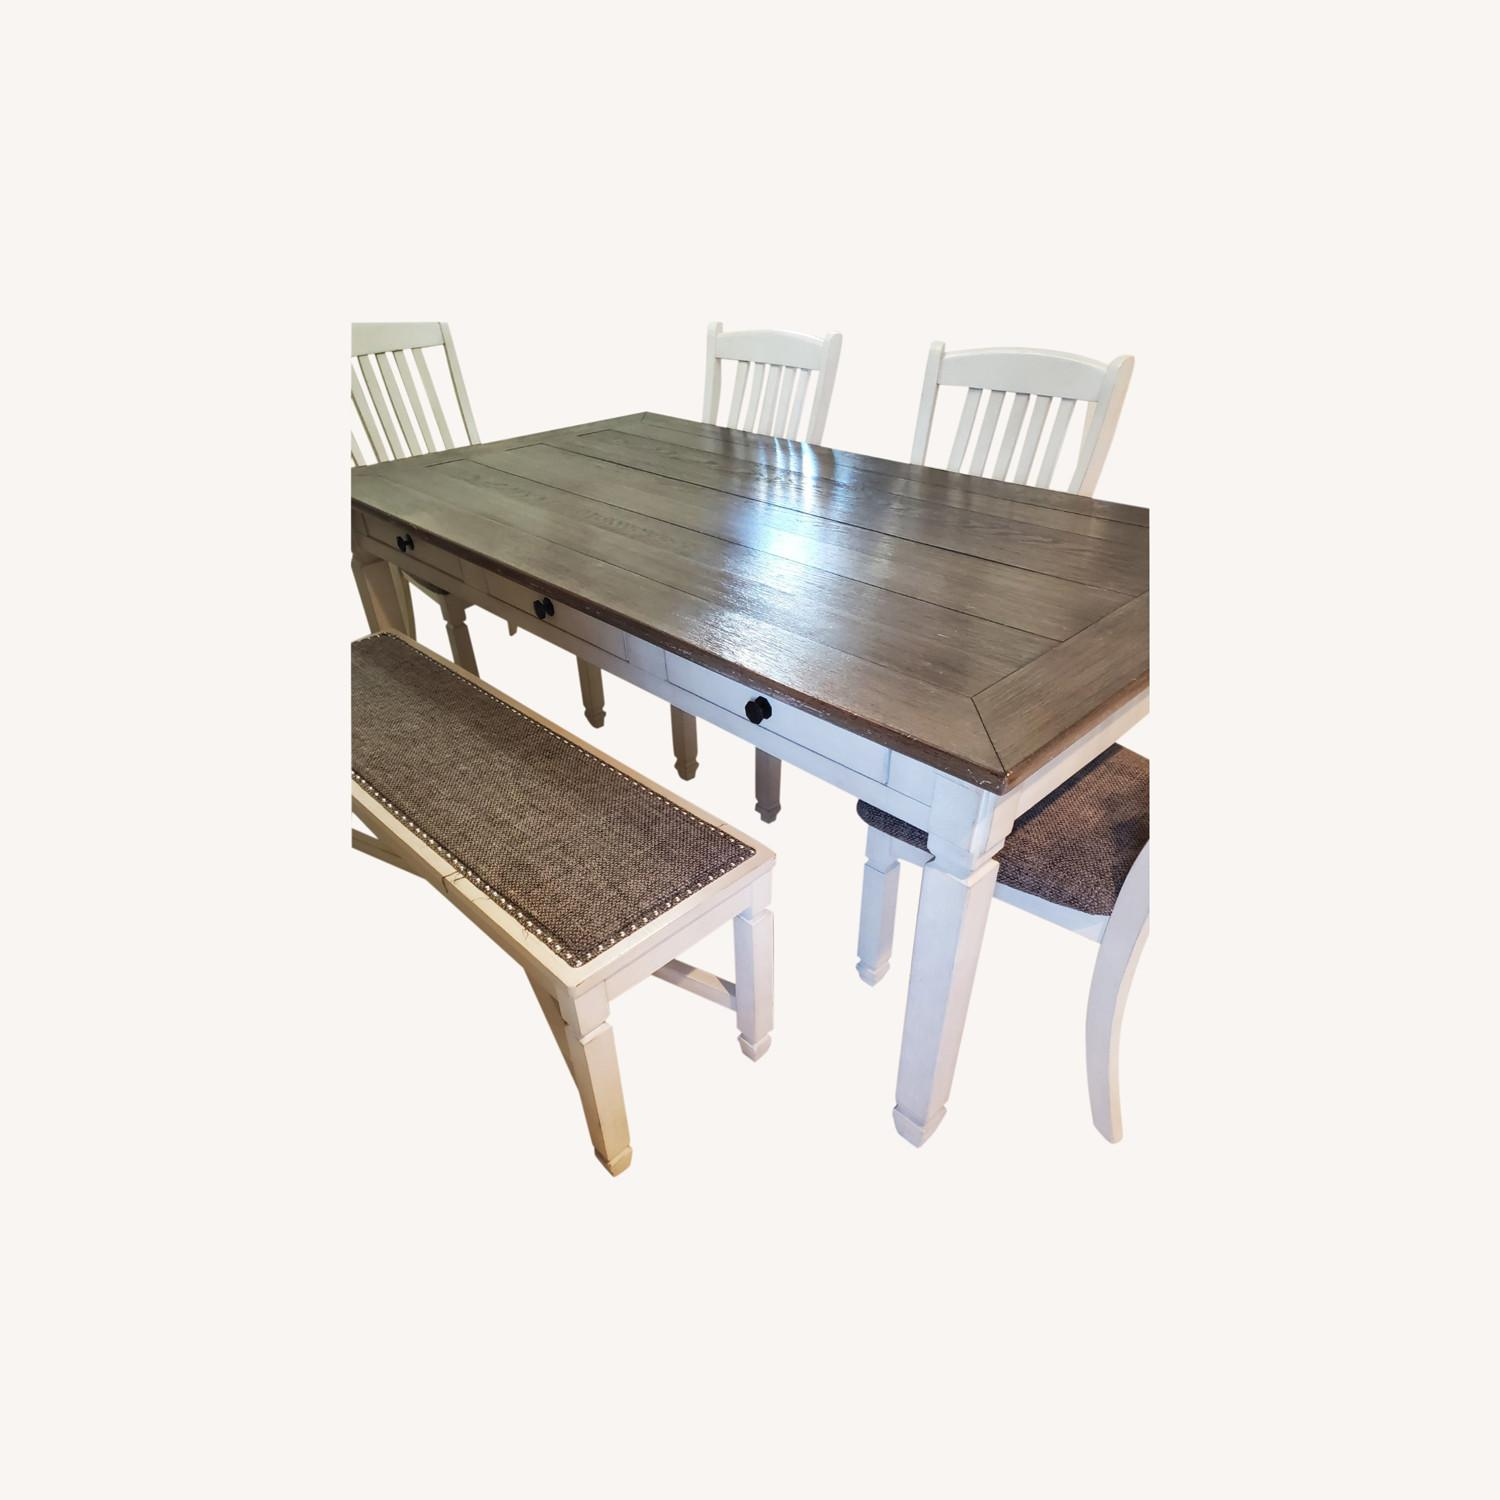 New Rustics Ashley Home Dining Table Seats 7 - image-0